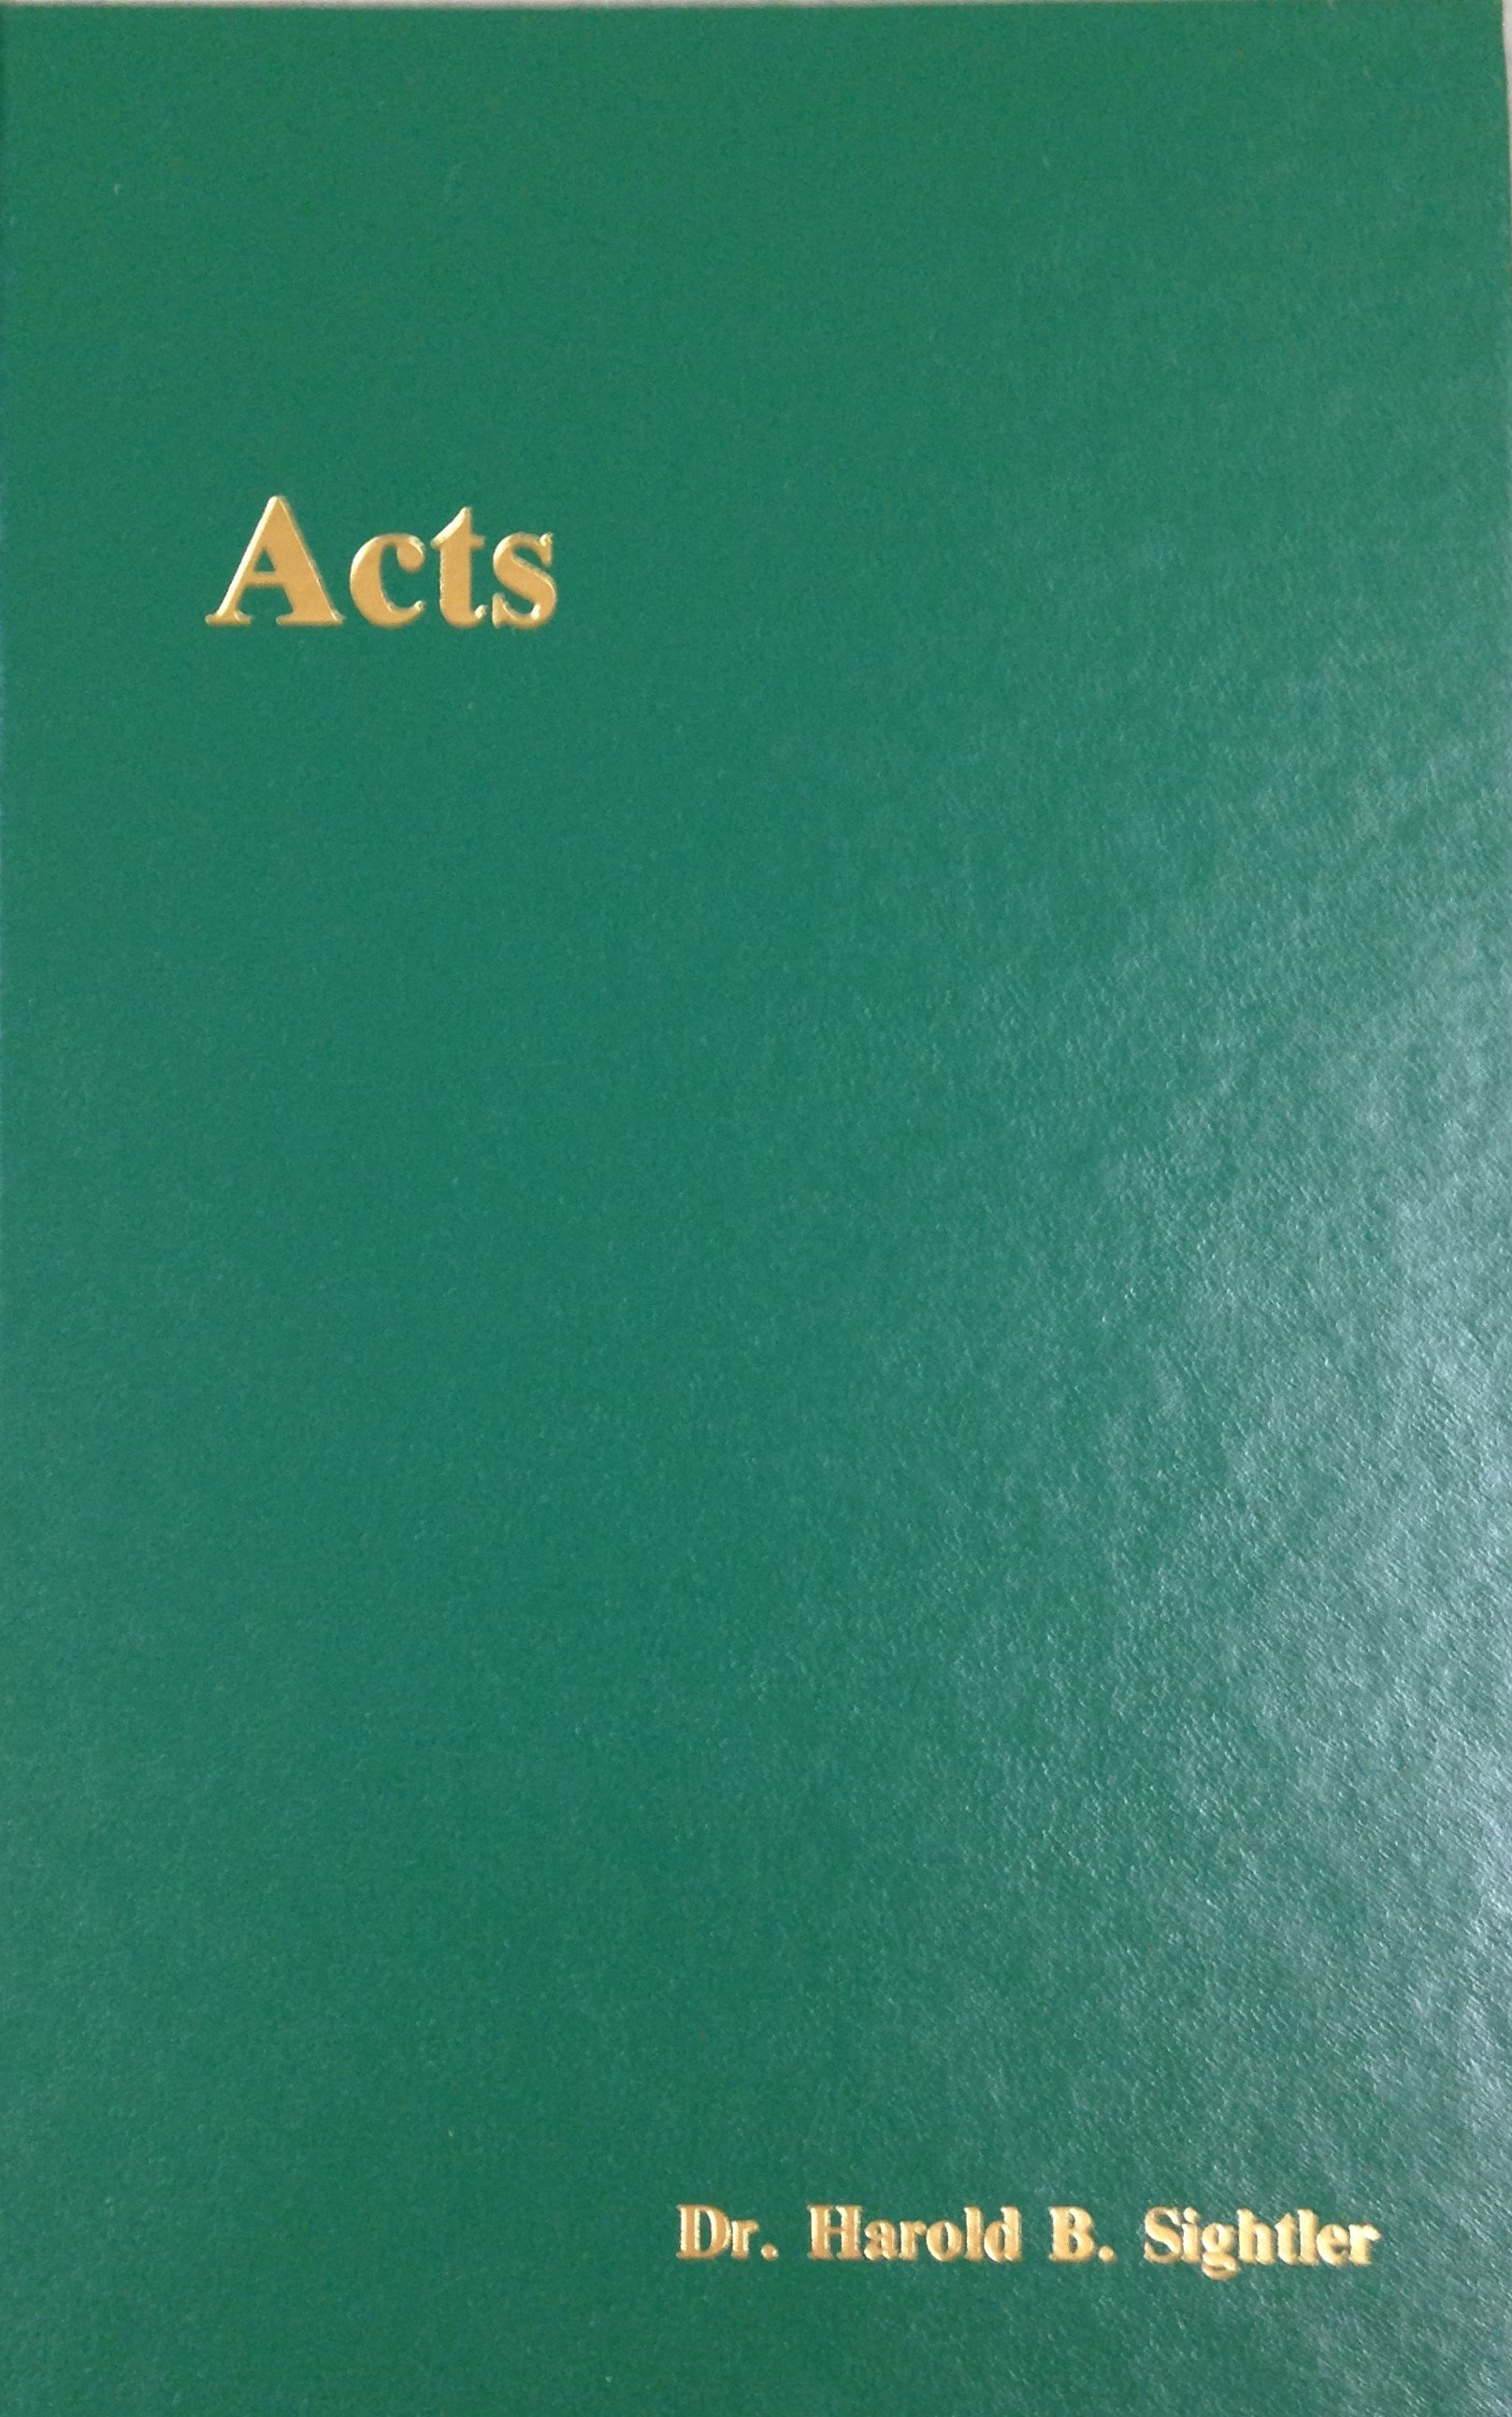 Acts by Dr. Harold B. Sightler 00052